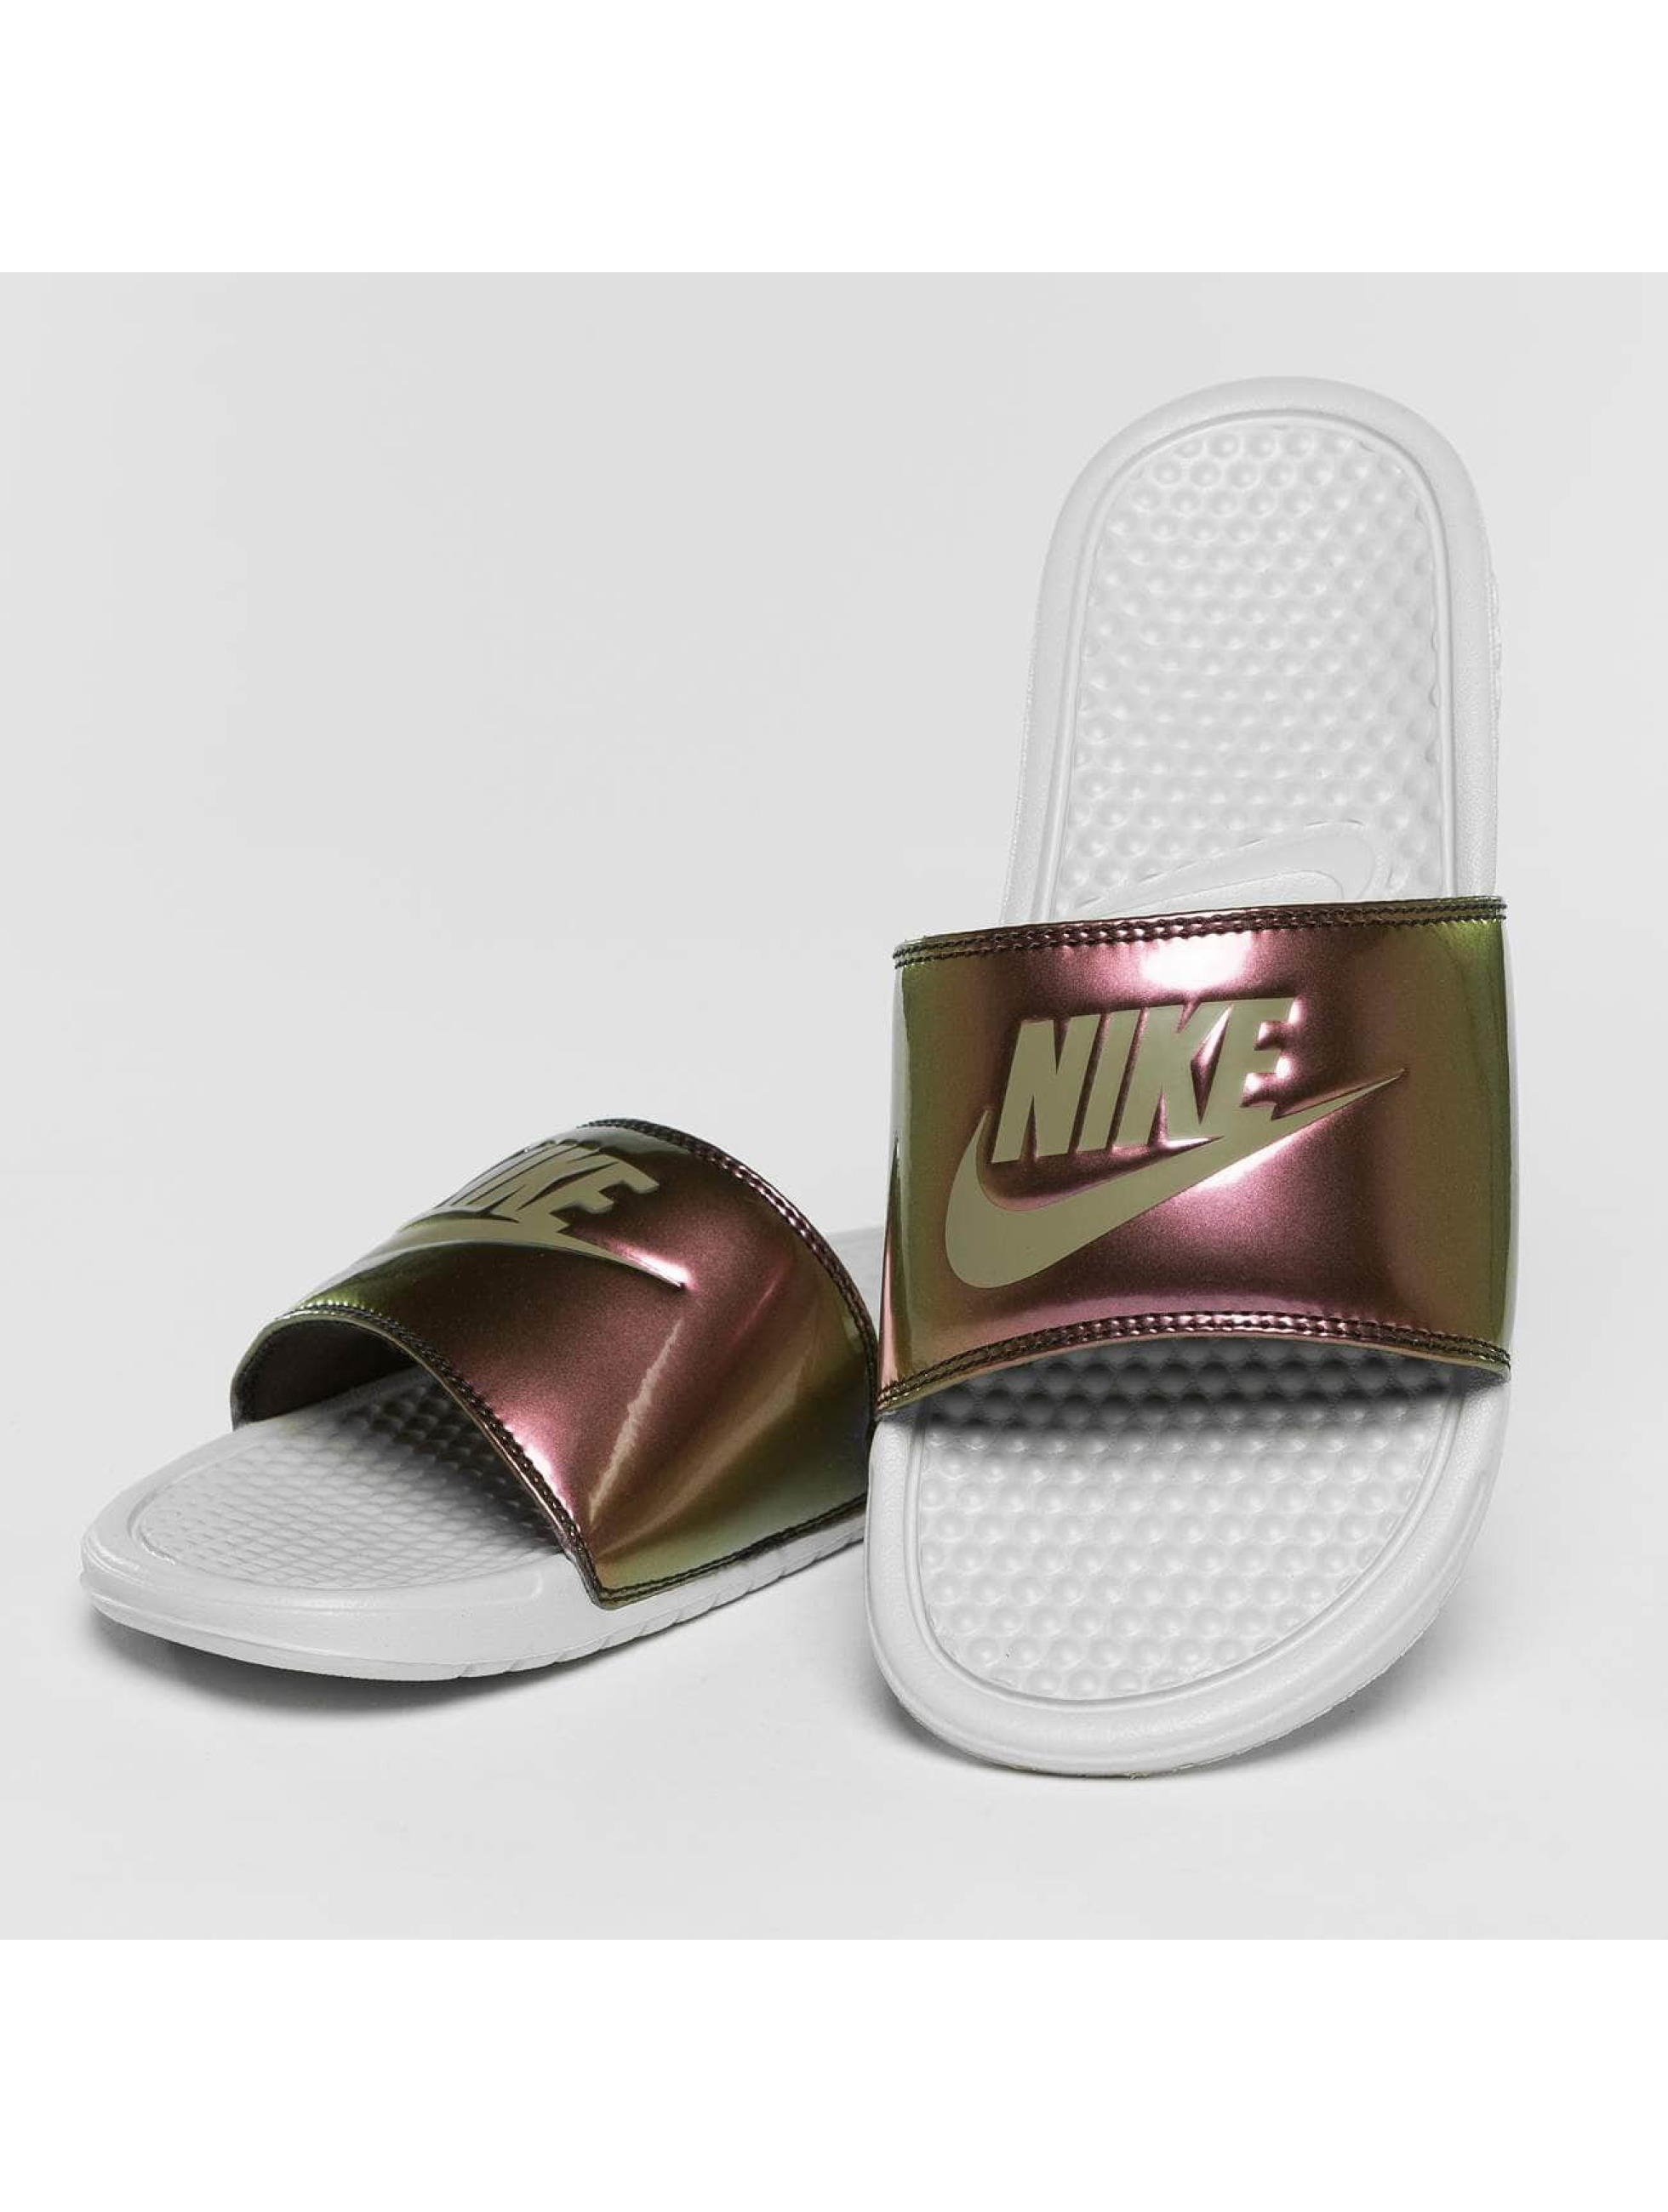 Nike Chanclas / Sandalias Just Do It blanco